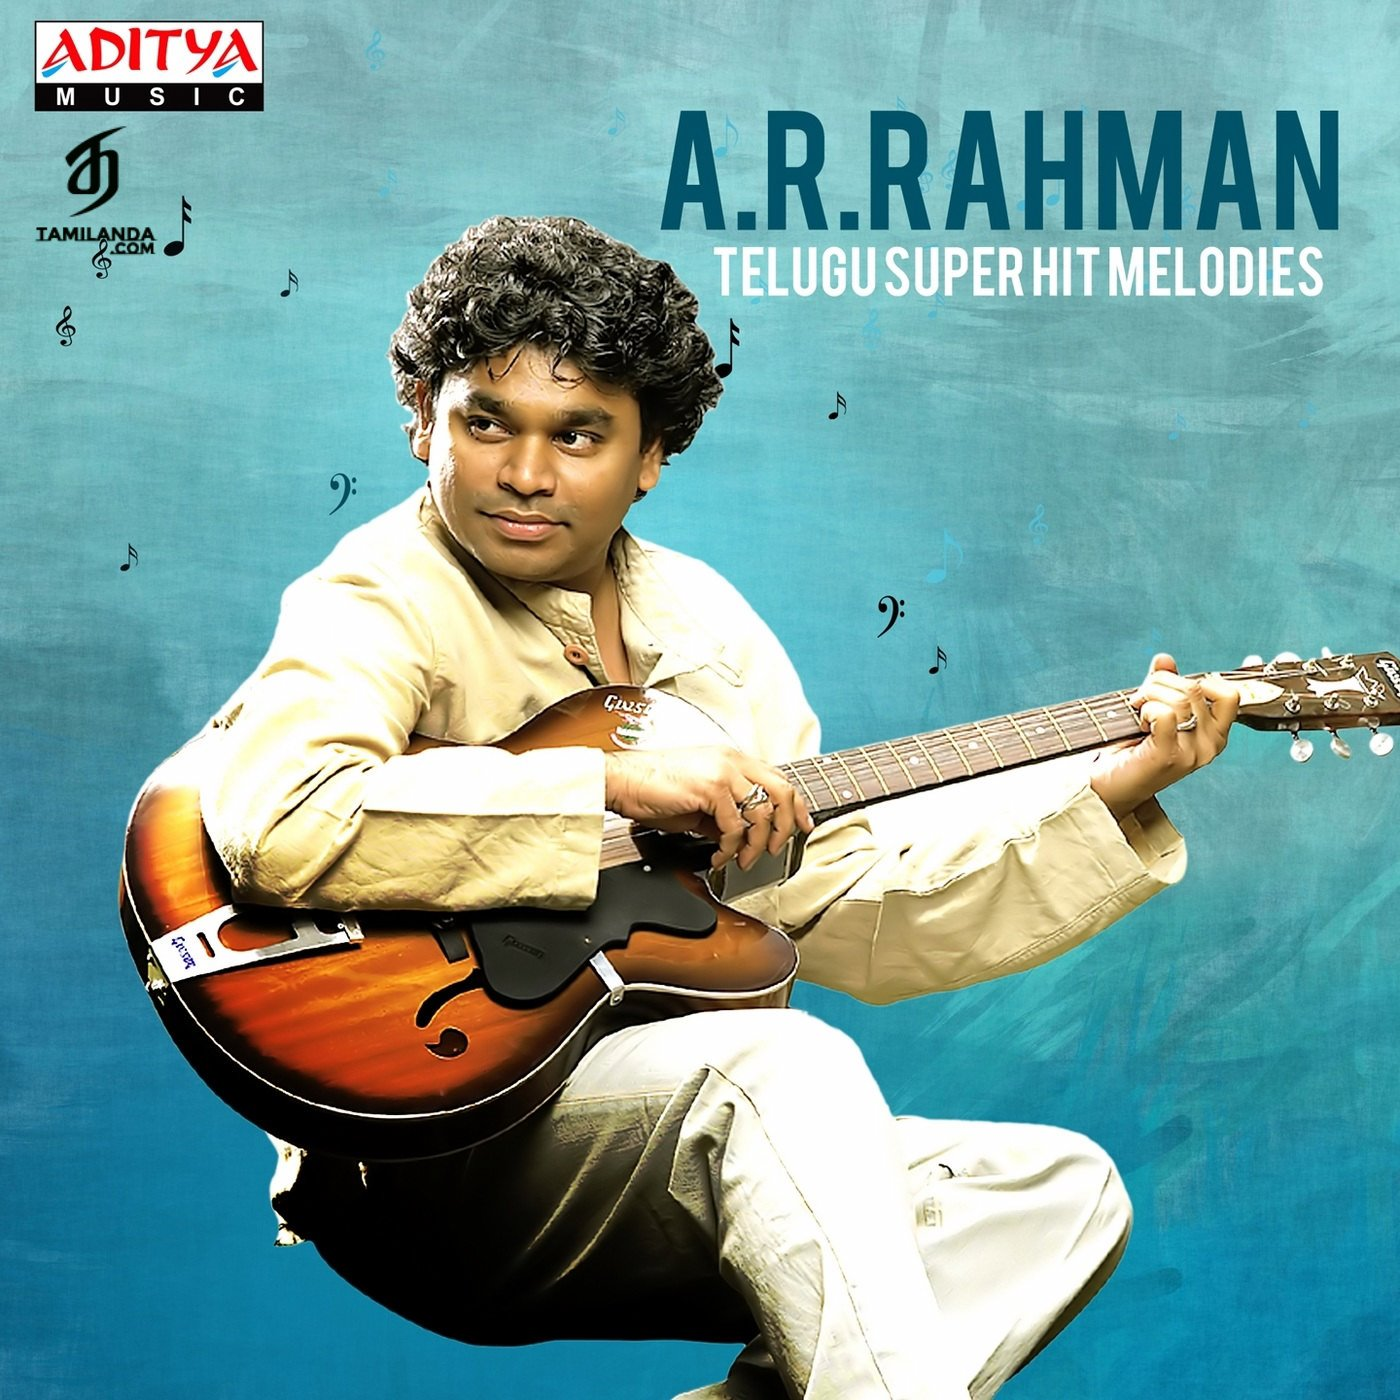 A.R.Rahman Telugu Super Hit Melodies FLAC Songs